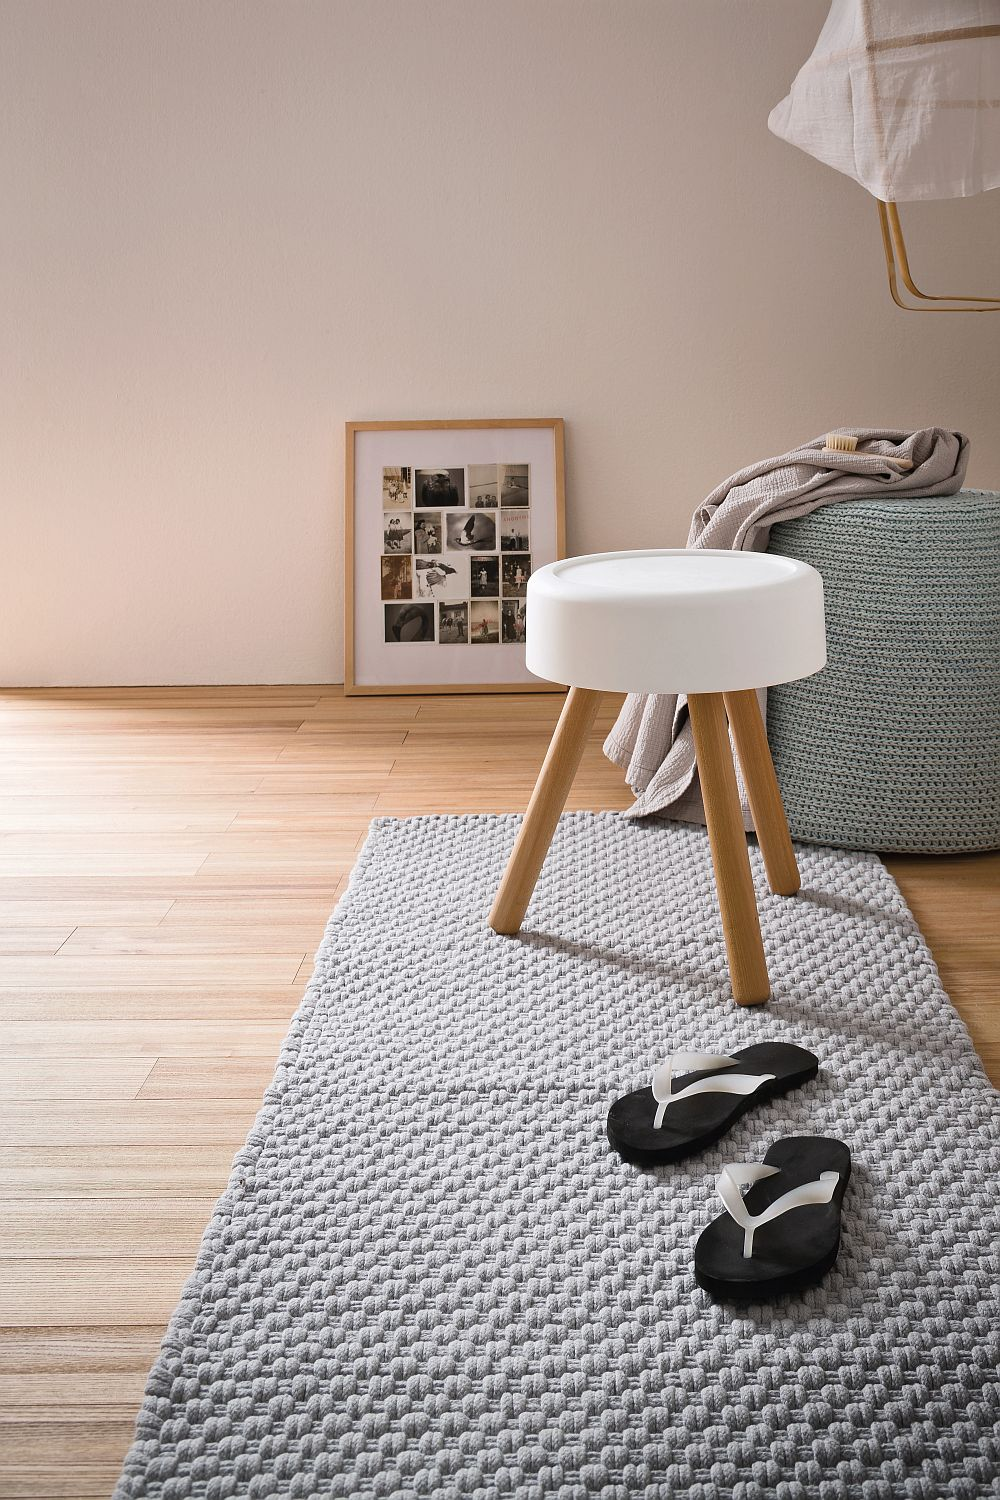 Simple stool that combines aesthetics with ergonomics